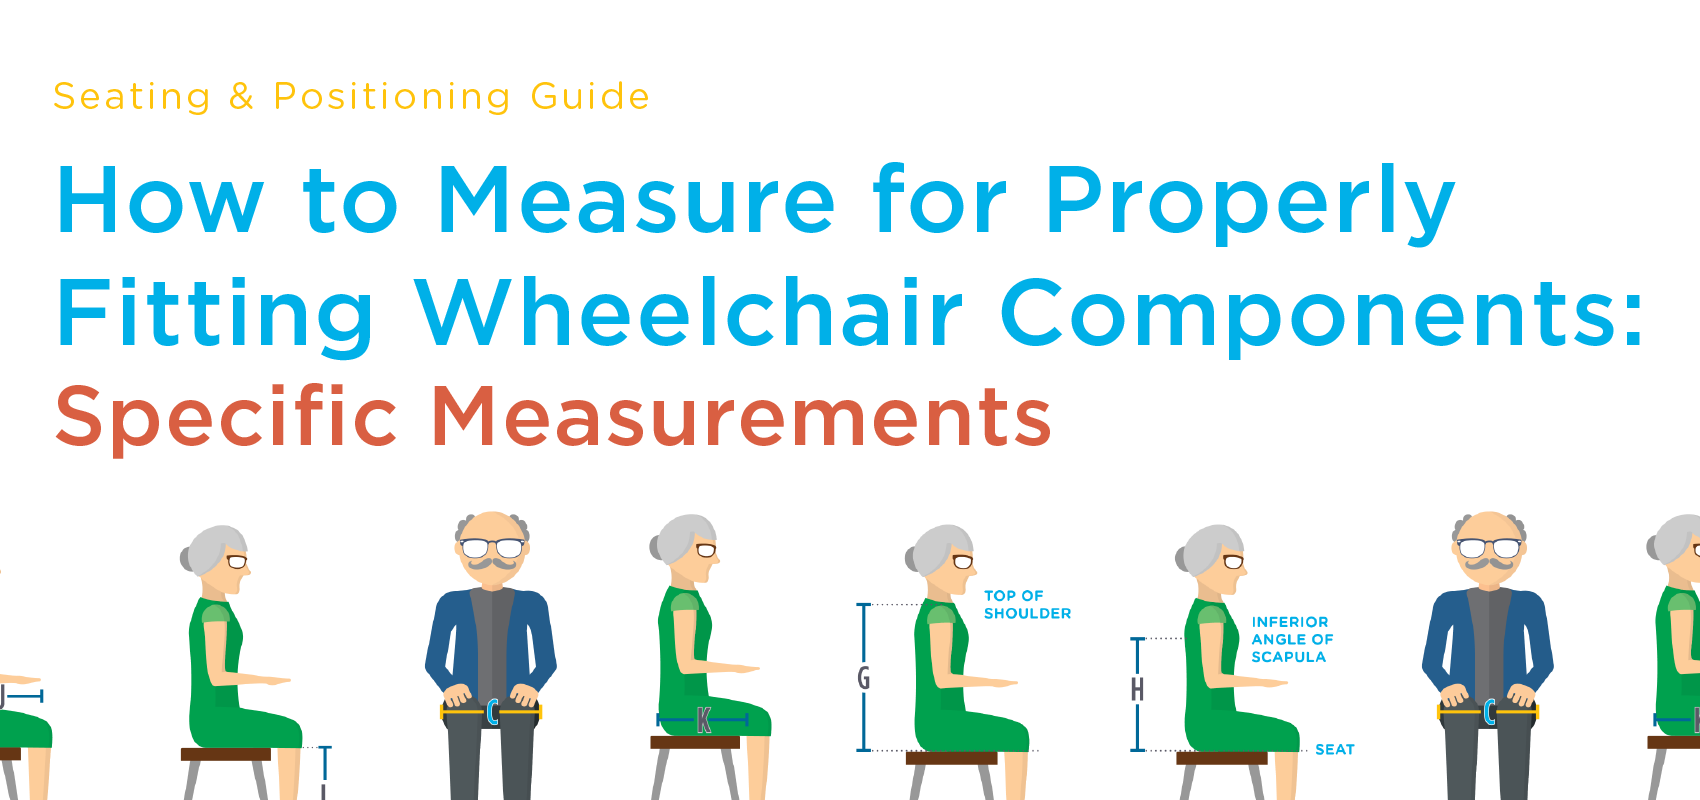 Awe Inspiring How To Measure For Properly Fitting Wheelchair Components Inzonedesignstudio Interior Chair Design Inzonedesignstudiocom